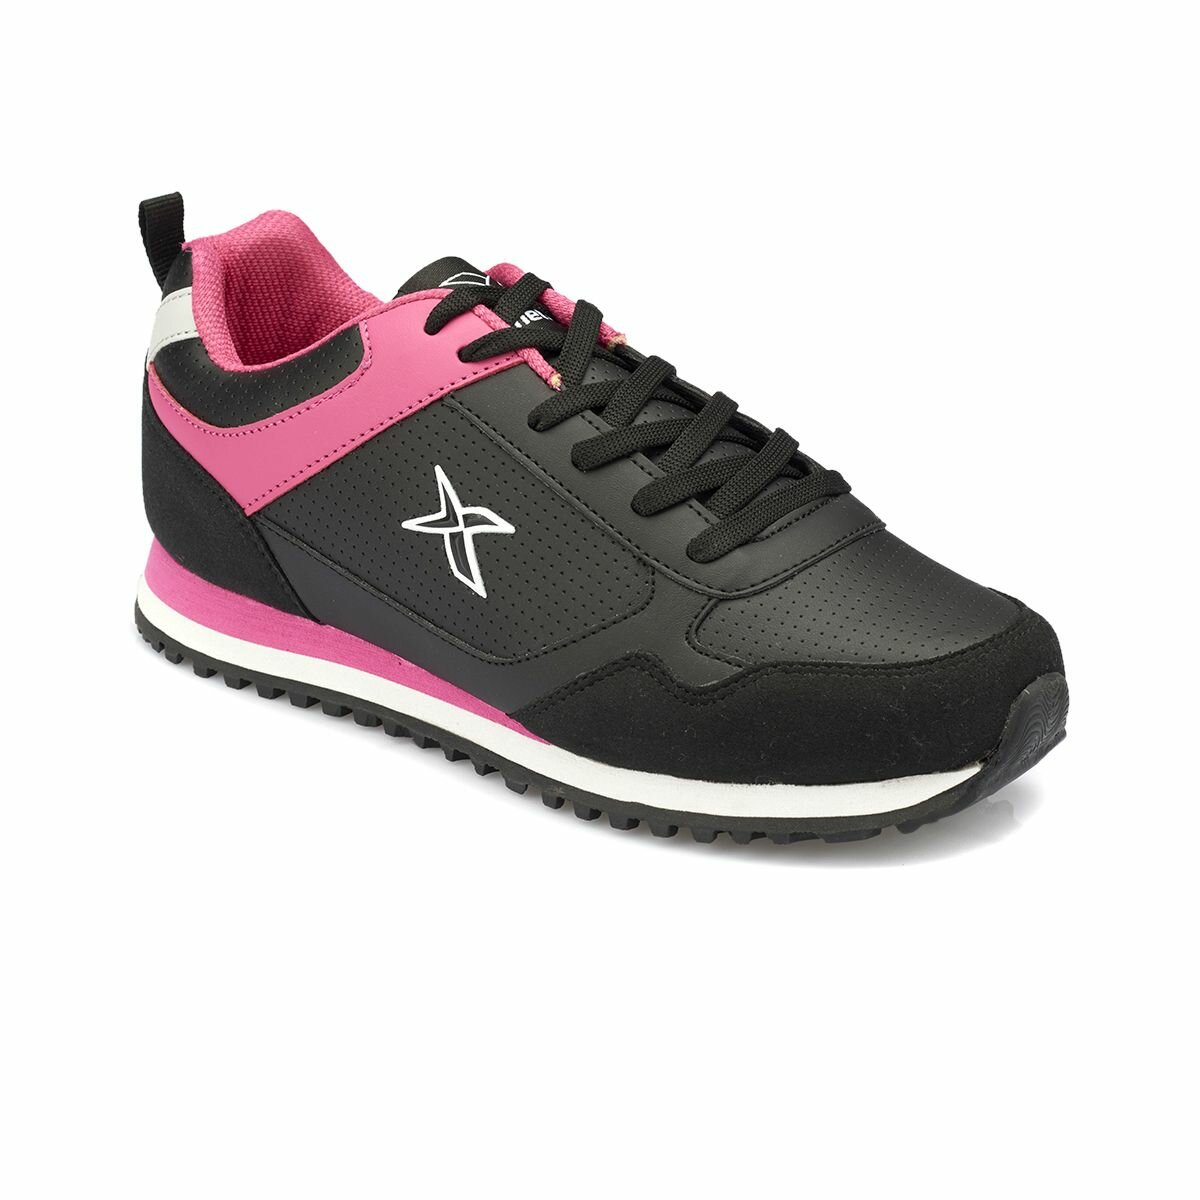 FLO AKONI Black Women 'S Sneaker Shoes KINETIX